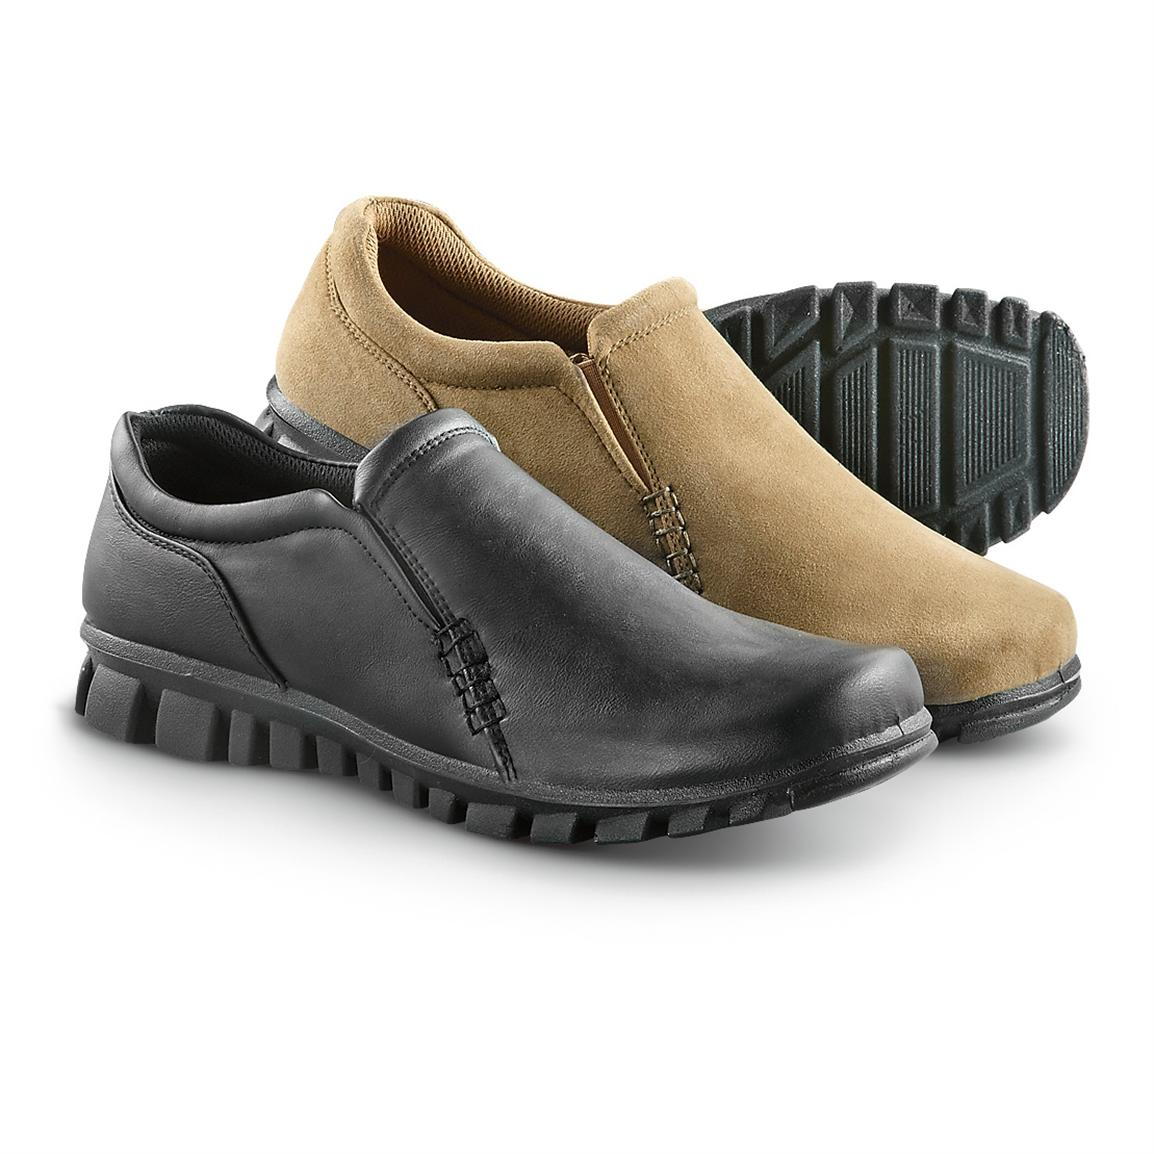 Men's Deer Stags® Falcon Slip-on Shoes